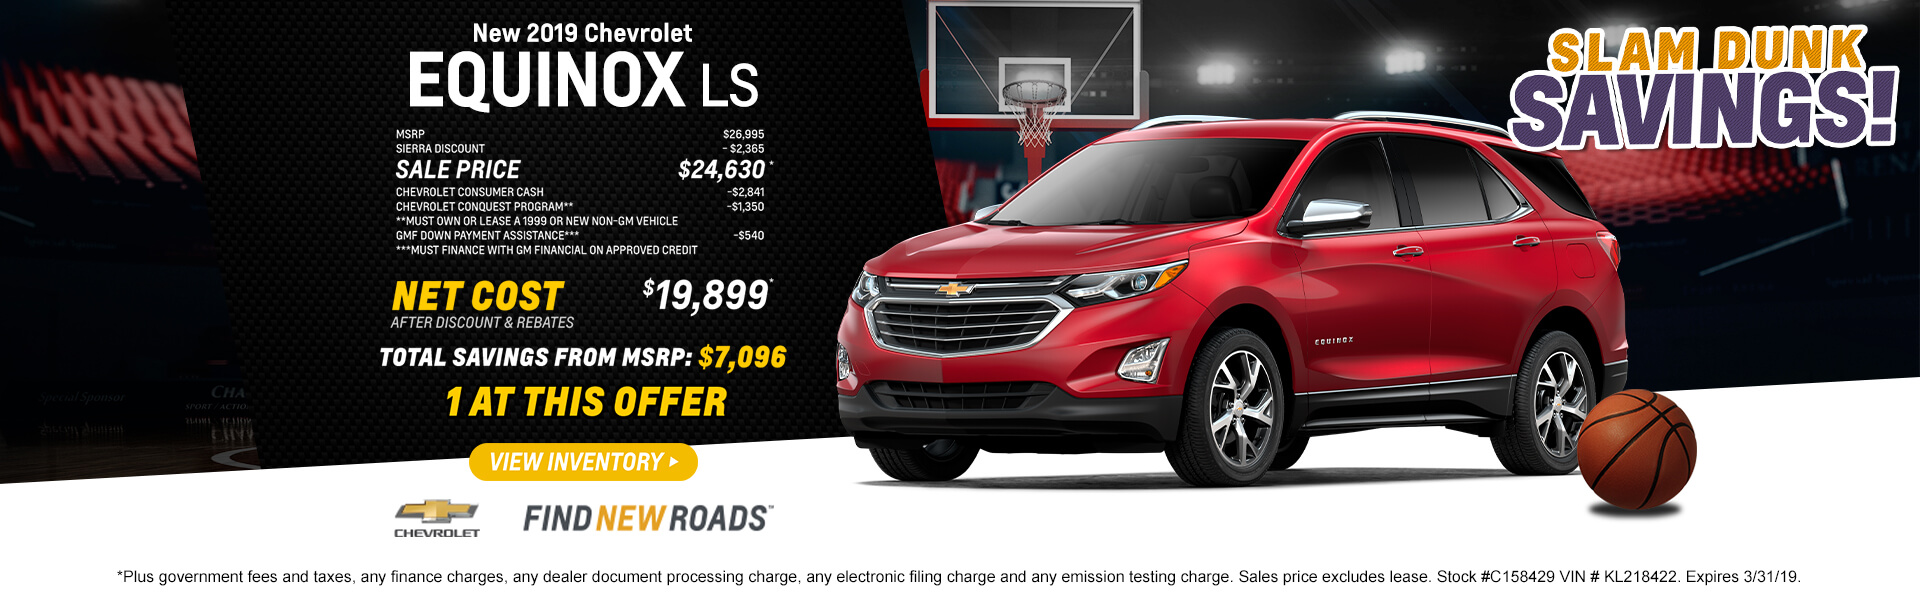 2019 Equinox LS $19,899 *Plus government fees and taxes, any finance charges, any dealer document processing charge, any electronic filing charge and any emission testing charge. Sales price excludes lease. Stock #C158429 VIN # KL218422. Expires 3/31/19.